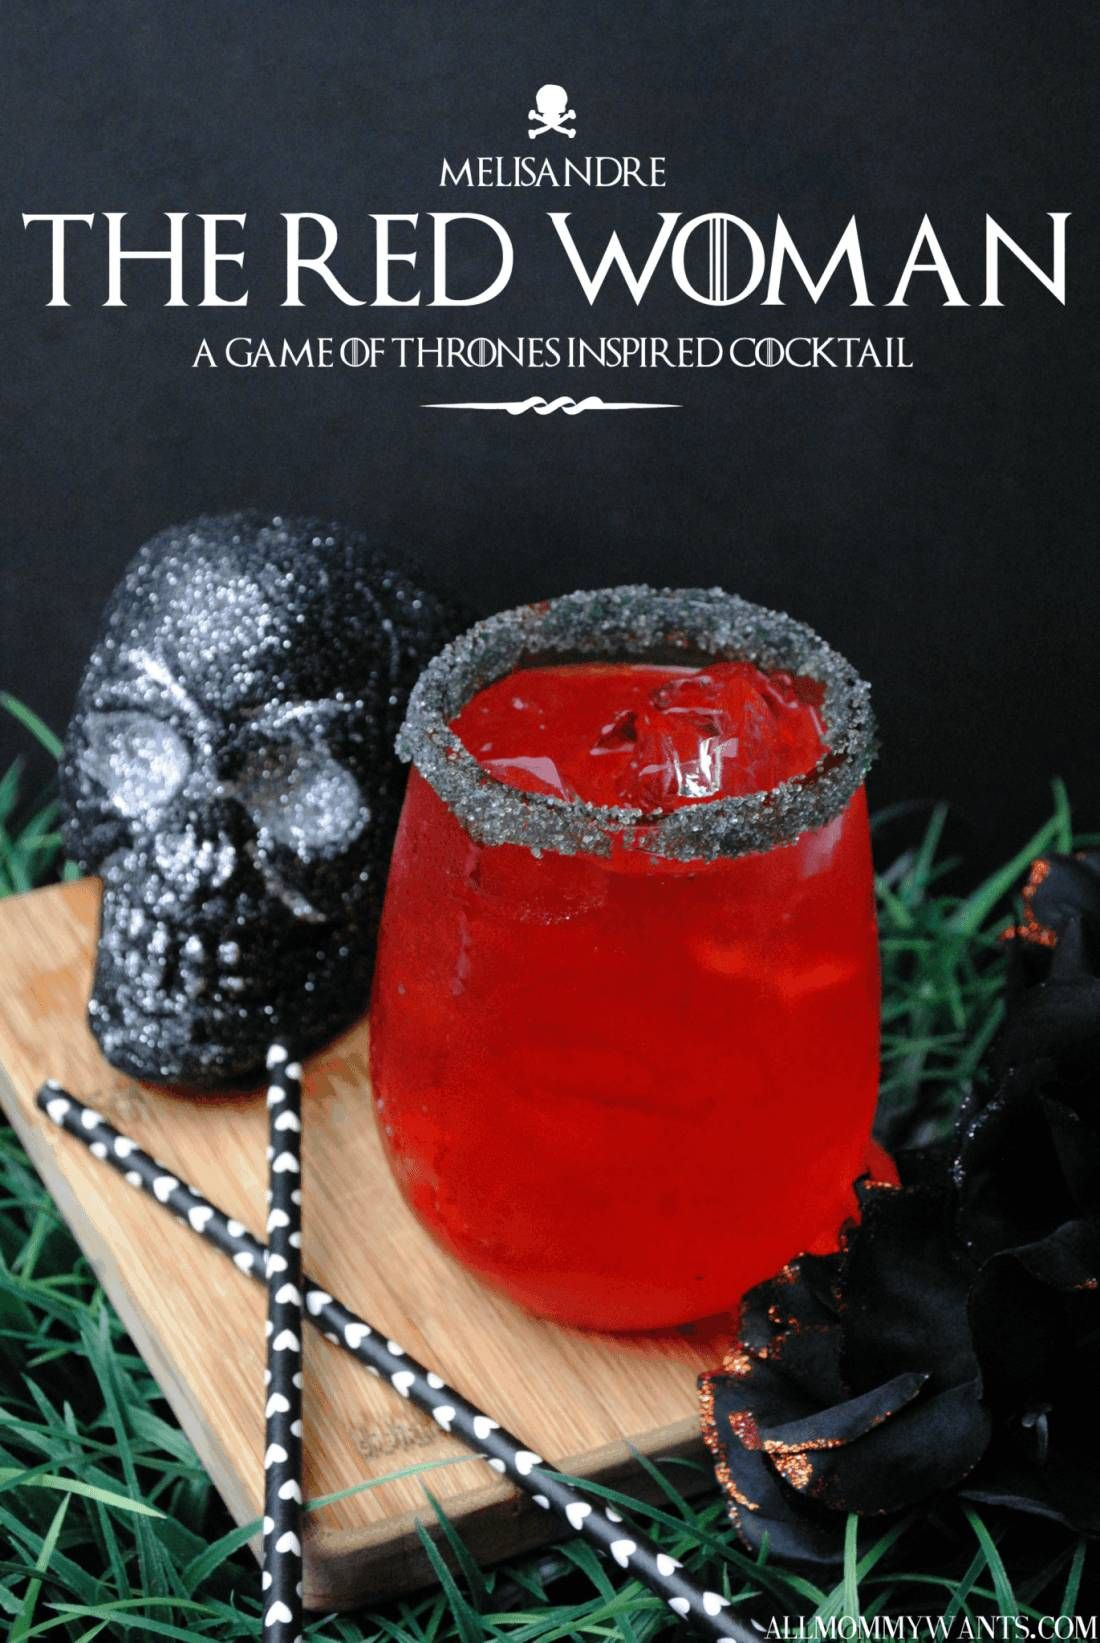 The Red Woman Cocktail Game Of Thrones Recipe With Images Game Of Thrones Cocktails Game Of Thrones Food Alcoholic Drinks